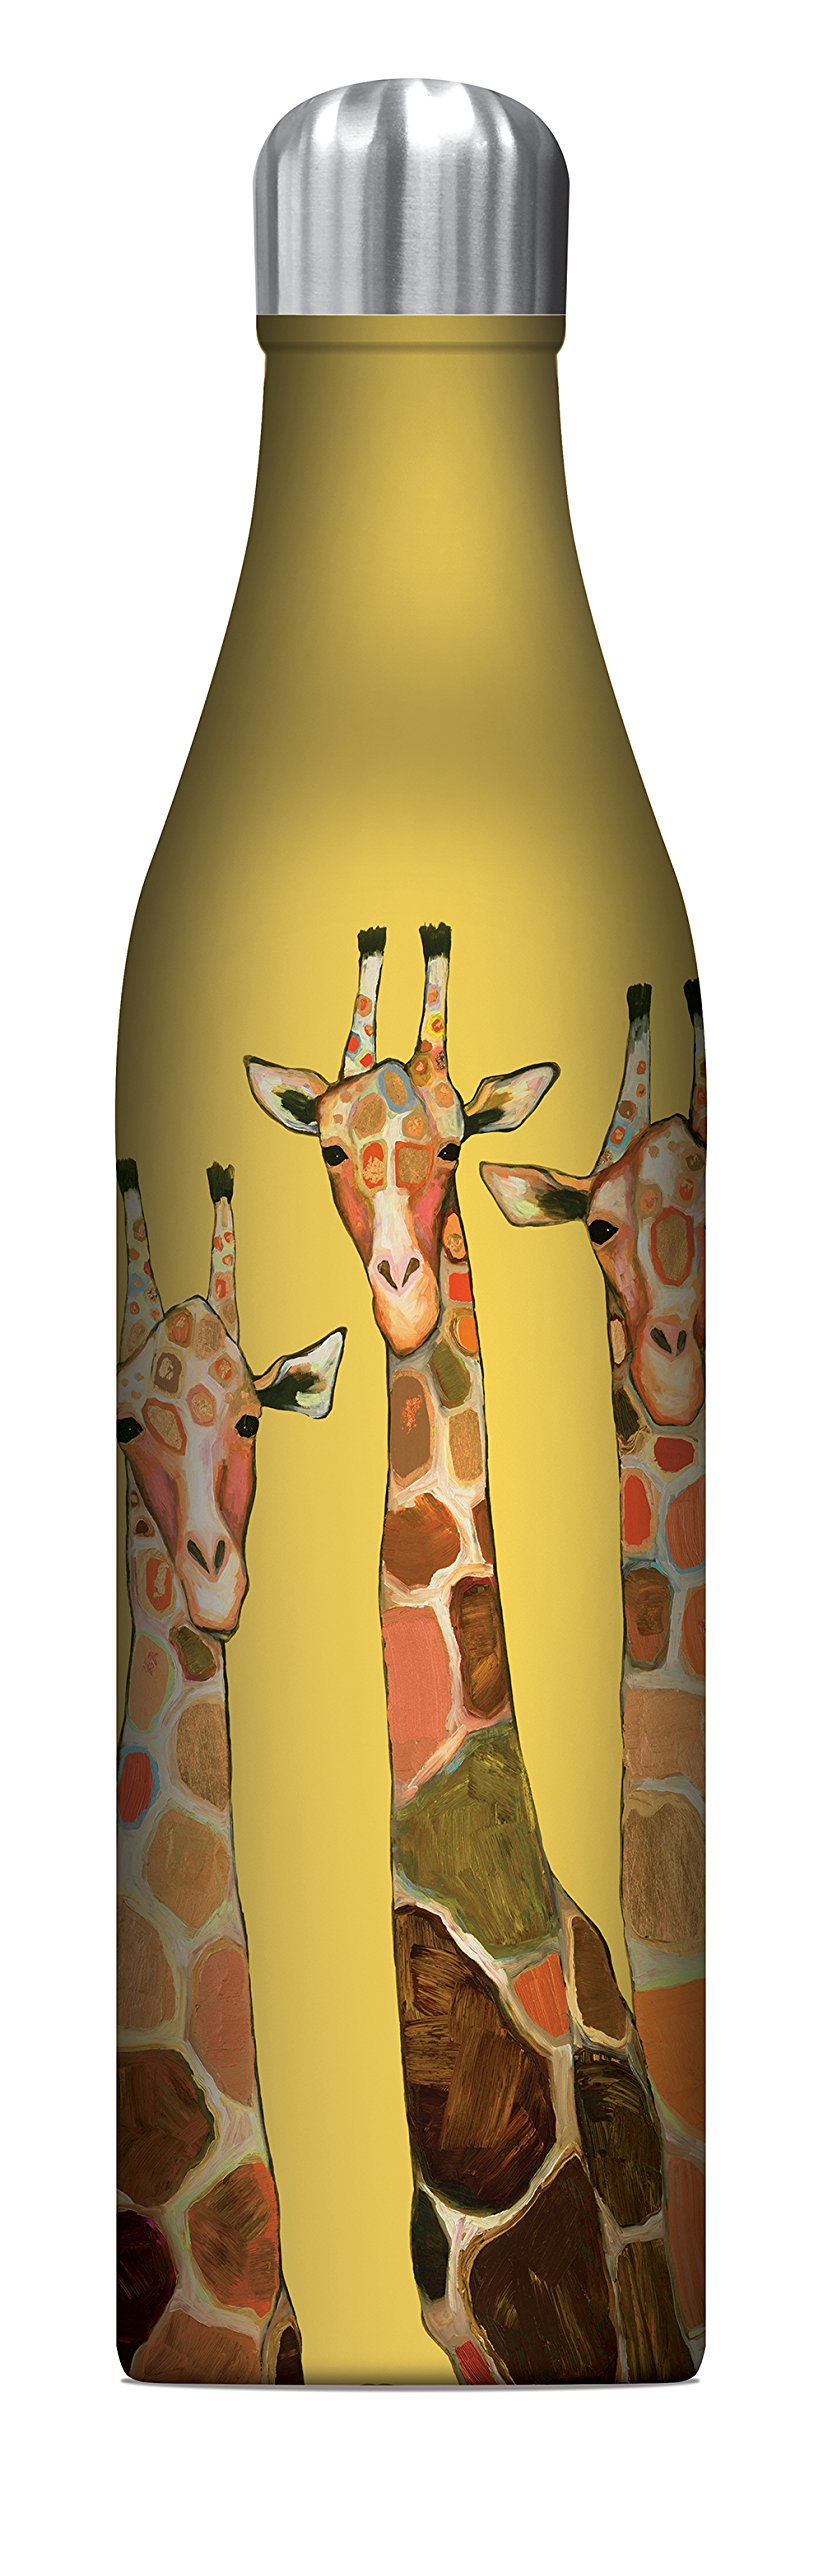 Studio Oh! 25 oz. Insulated Stainless Steel Water Bottle Available in 8 Different Designs, Eli Halpin Giraffe